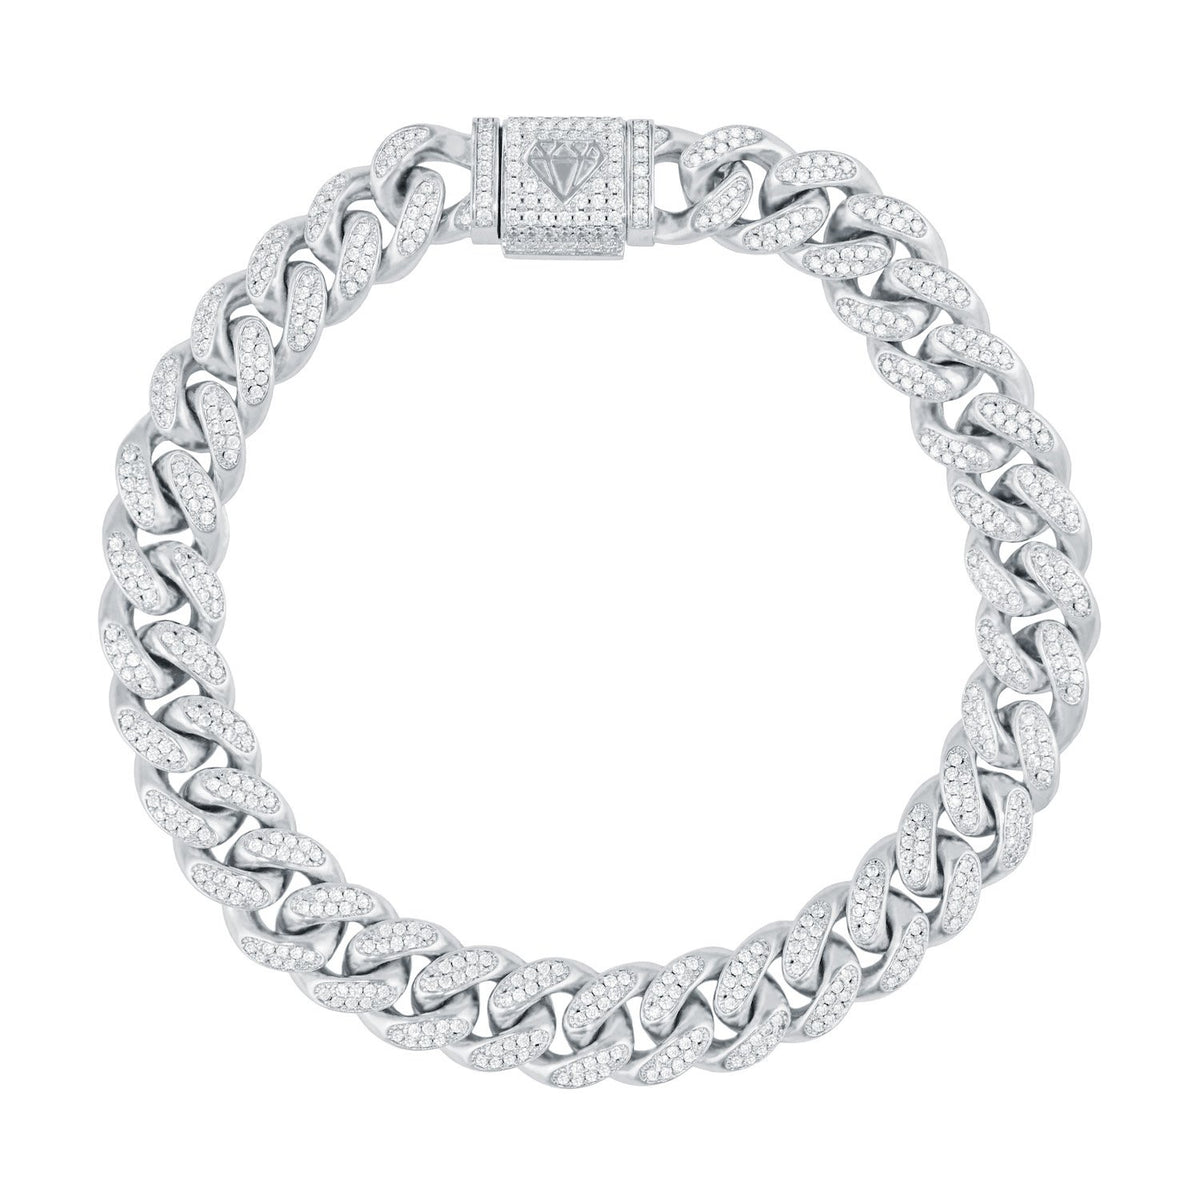 13MM CURVED DIAMOND CUBAN BRACELET IN WHITE GOLD